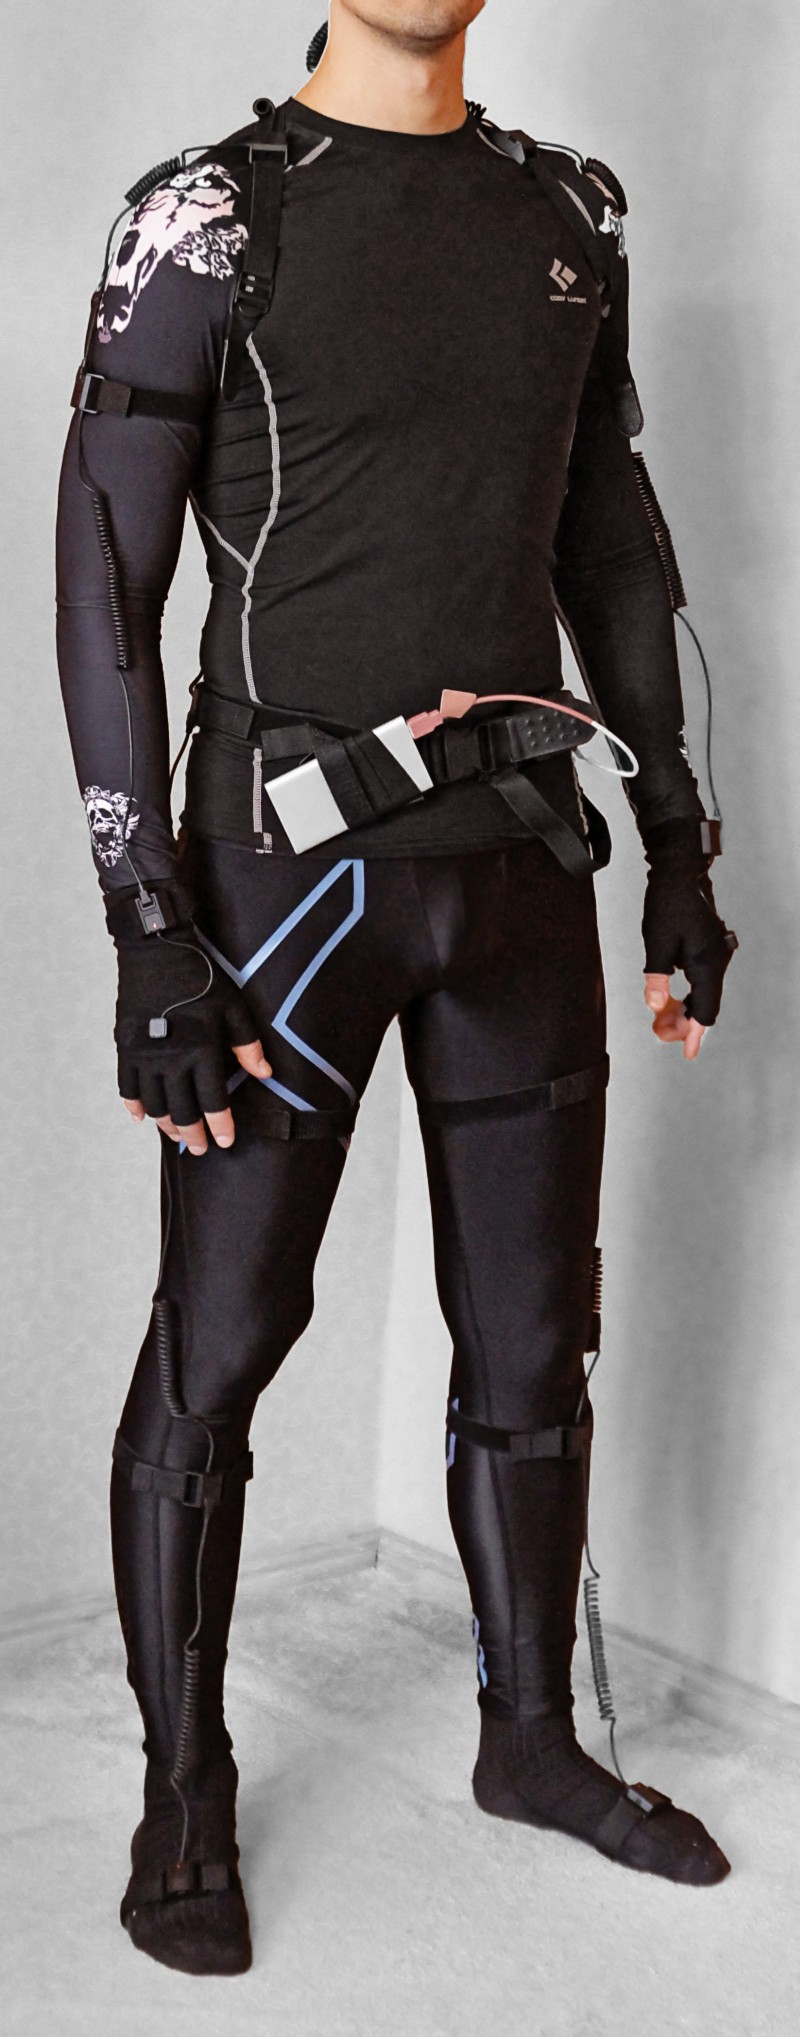 perception neuron 32 mocap suit